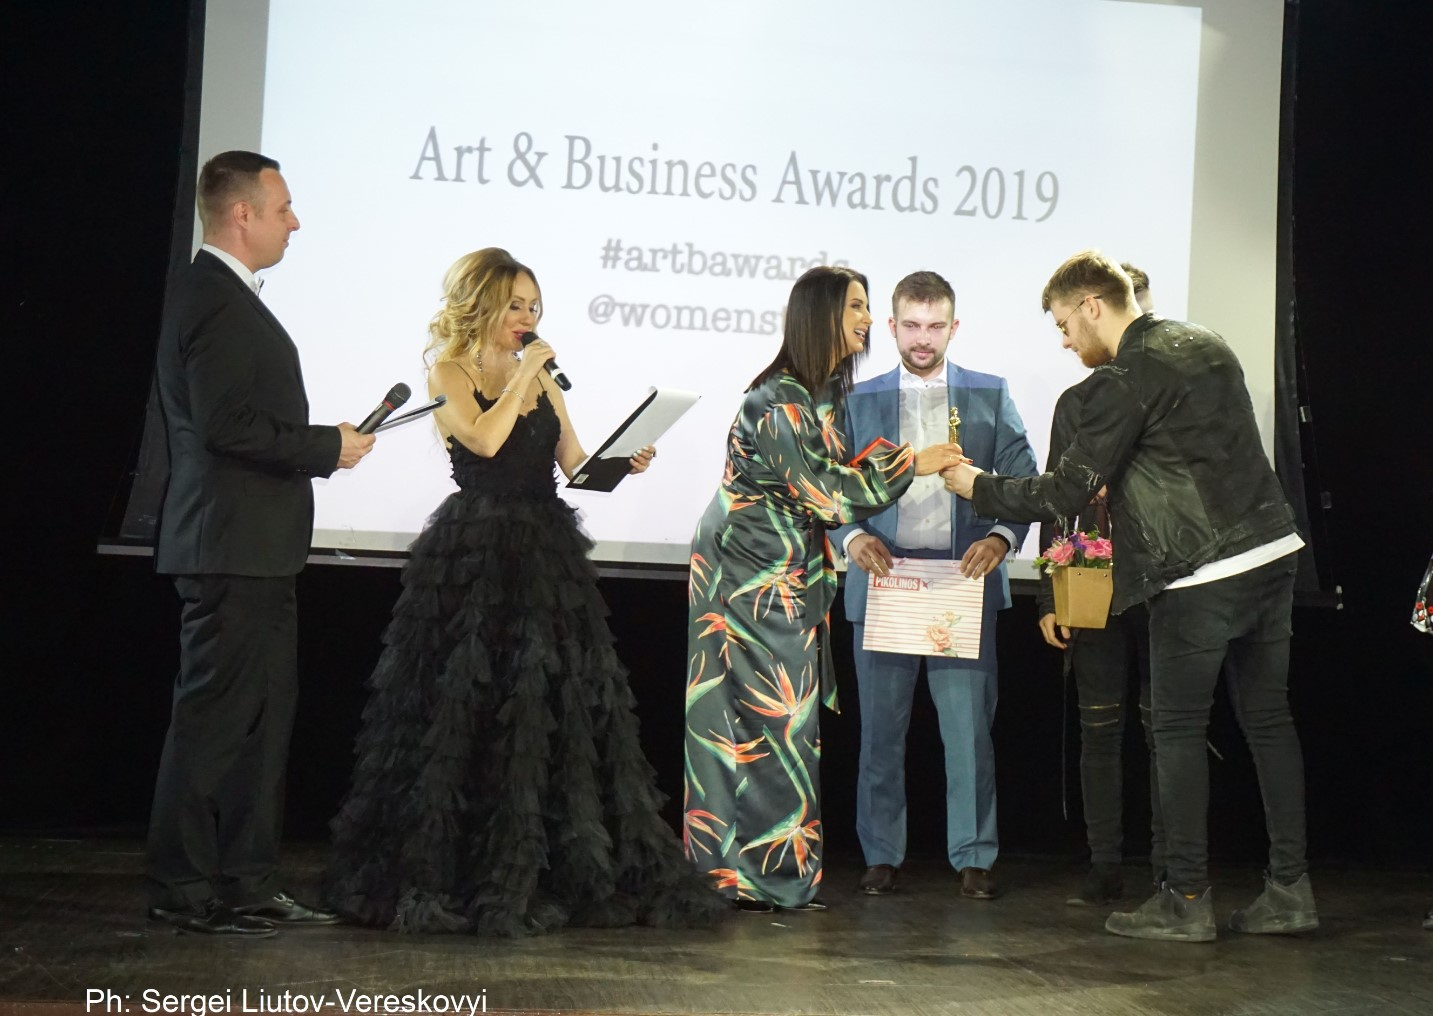 art-business-awards-2019-womens-time-pikolinos-spainshoes-ru